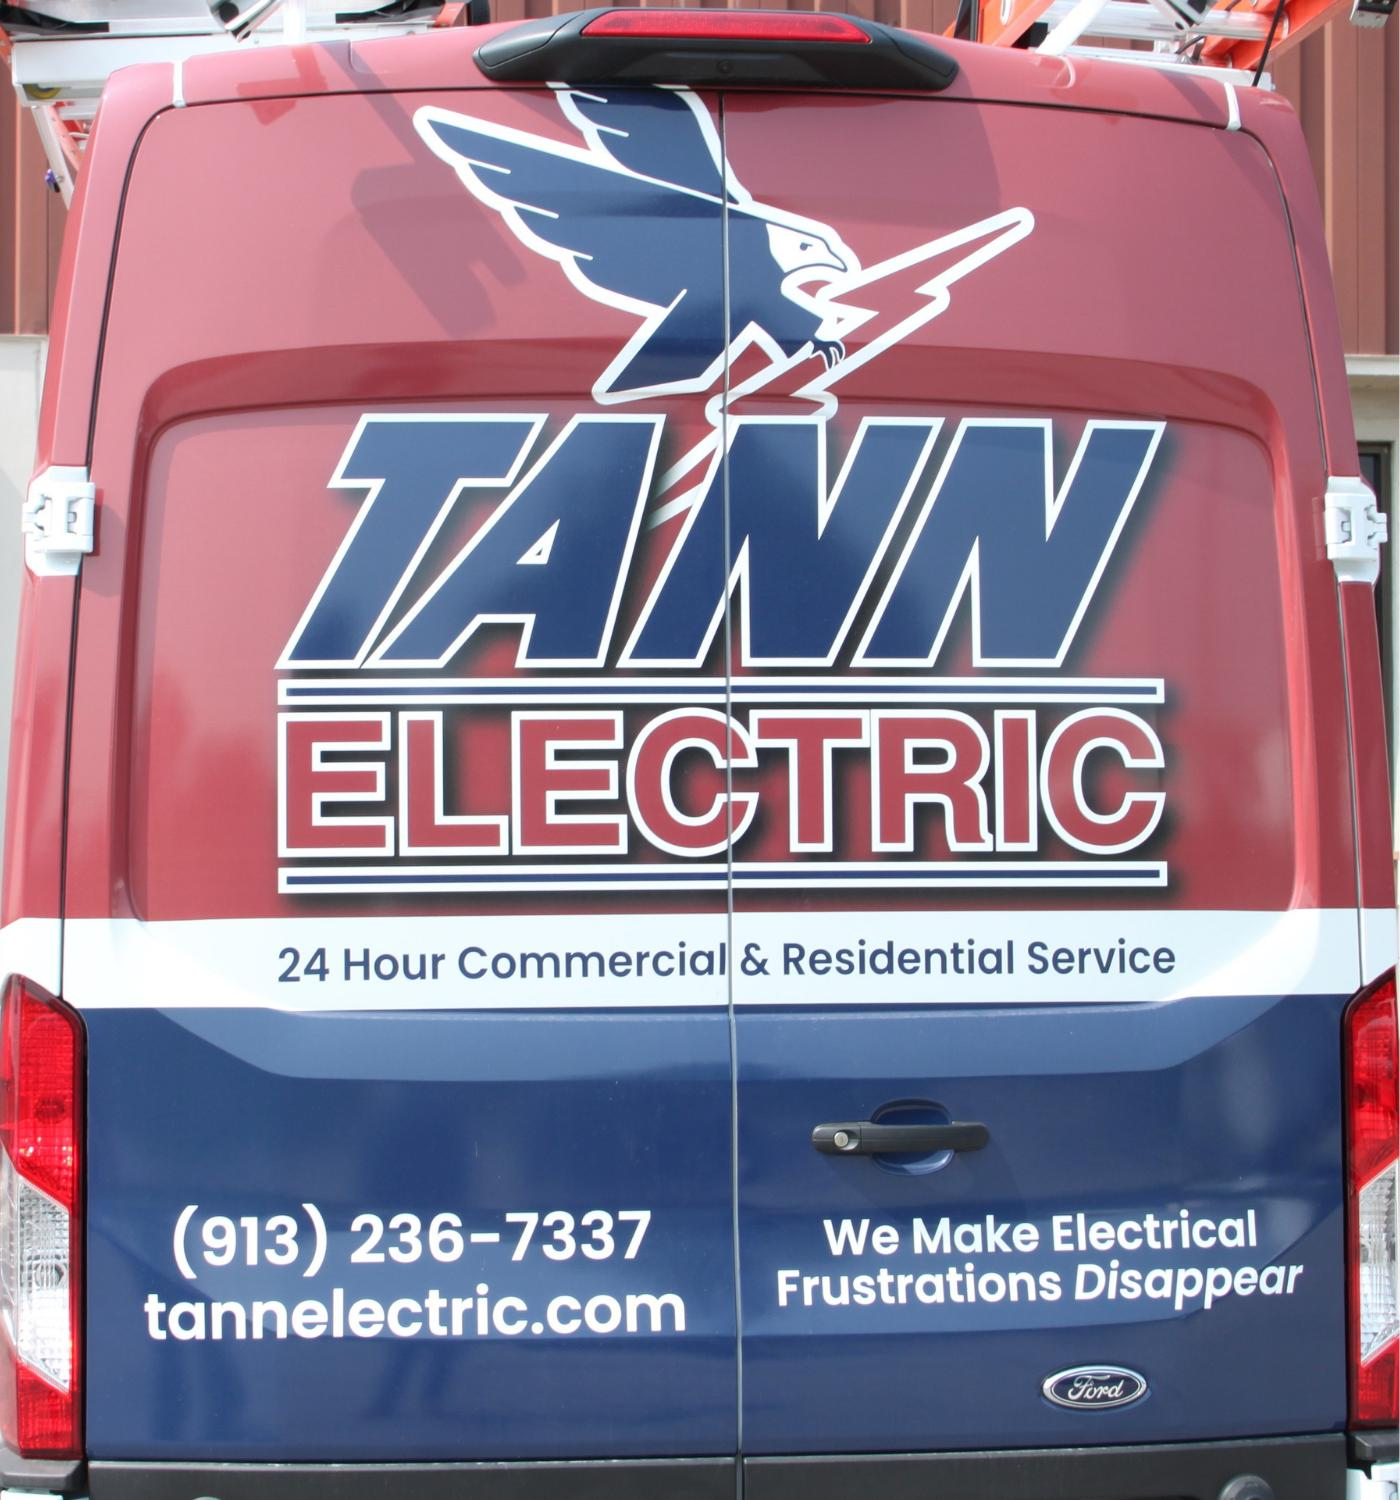 electrical services tann electric kansas city missouri commercial no time waste img